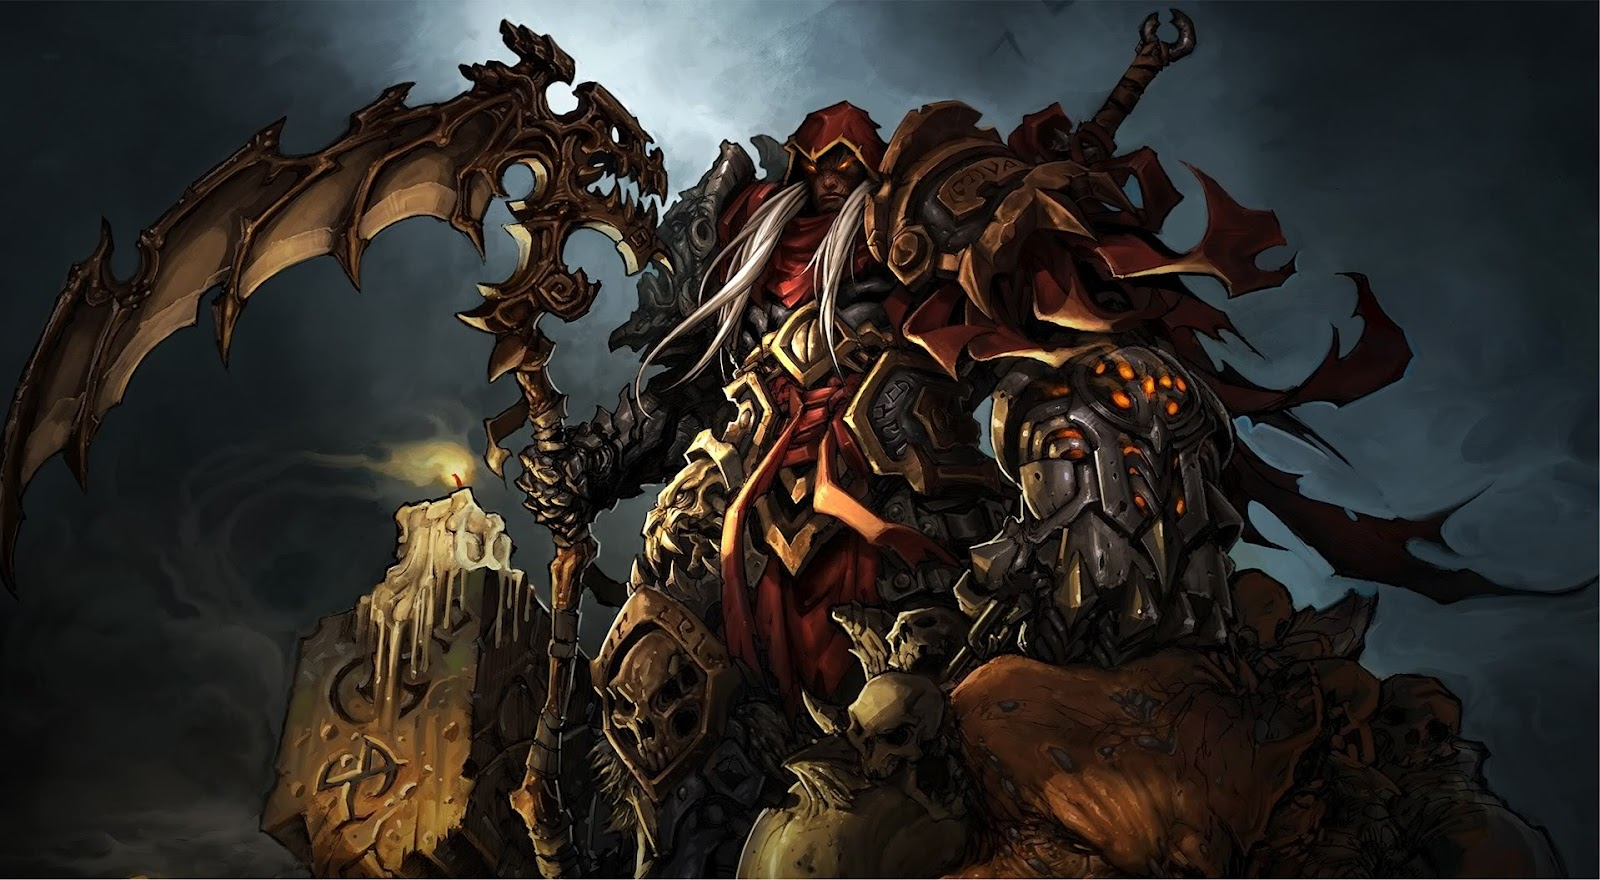 Darksiders - Xbox 360 Review | Chalgyr's Game Room